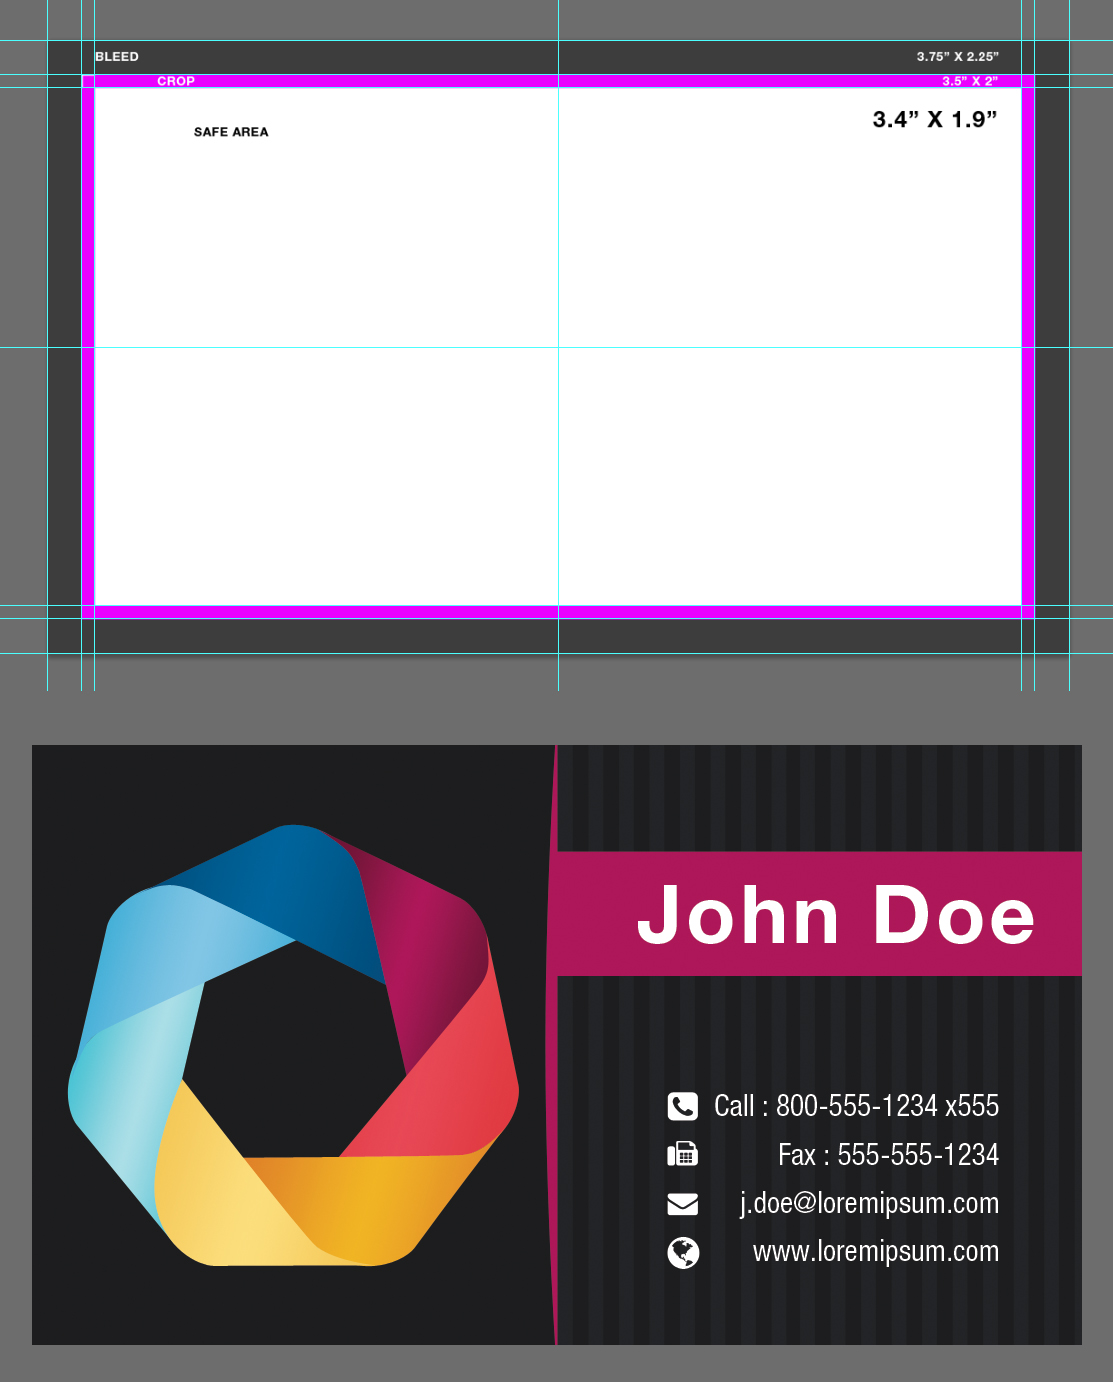 Blank business card template psd by xxdigipxx on deviantart blank business card template psd by xxdigipxx cheaphphosting Gallery